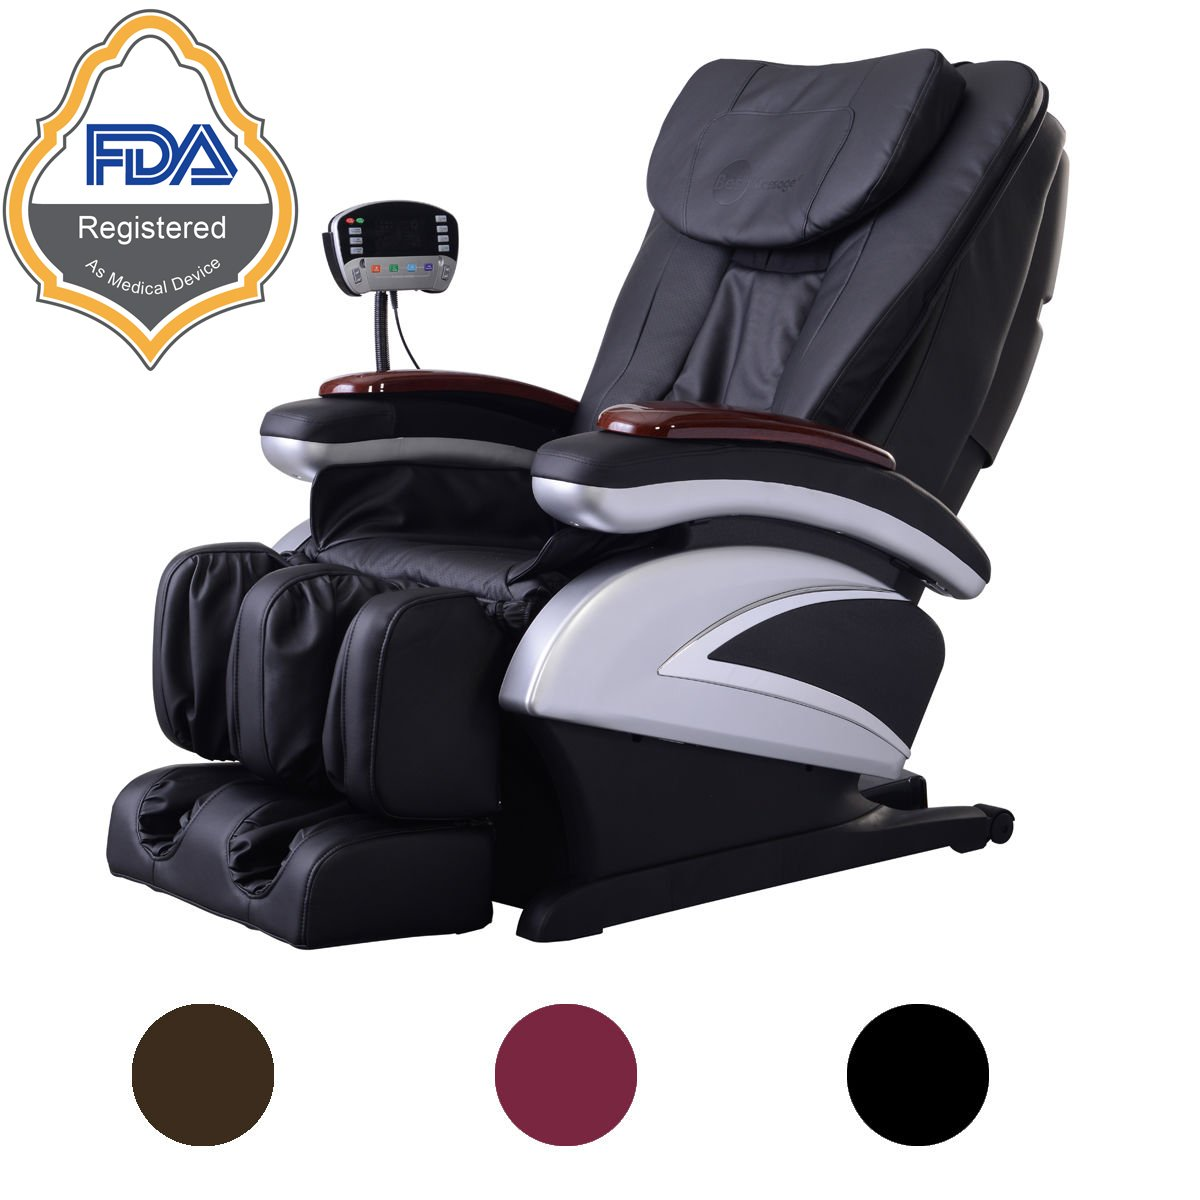 Top 5 Best Massage Chairs Reviews 2018-2019 - cover